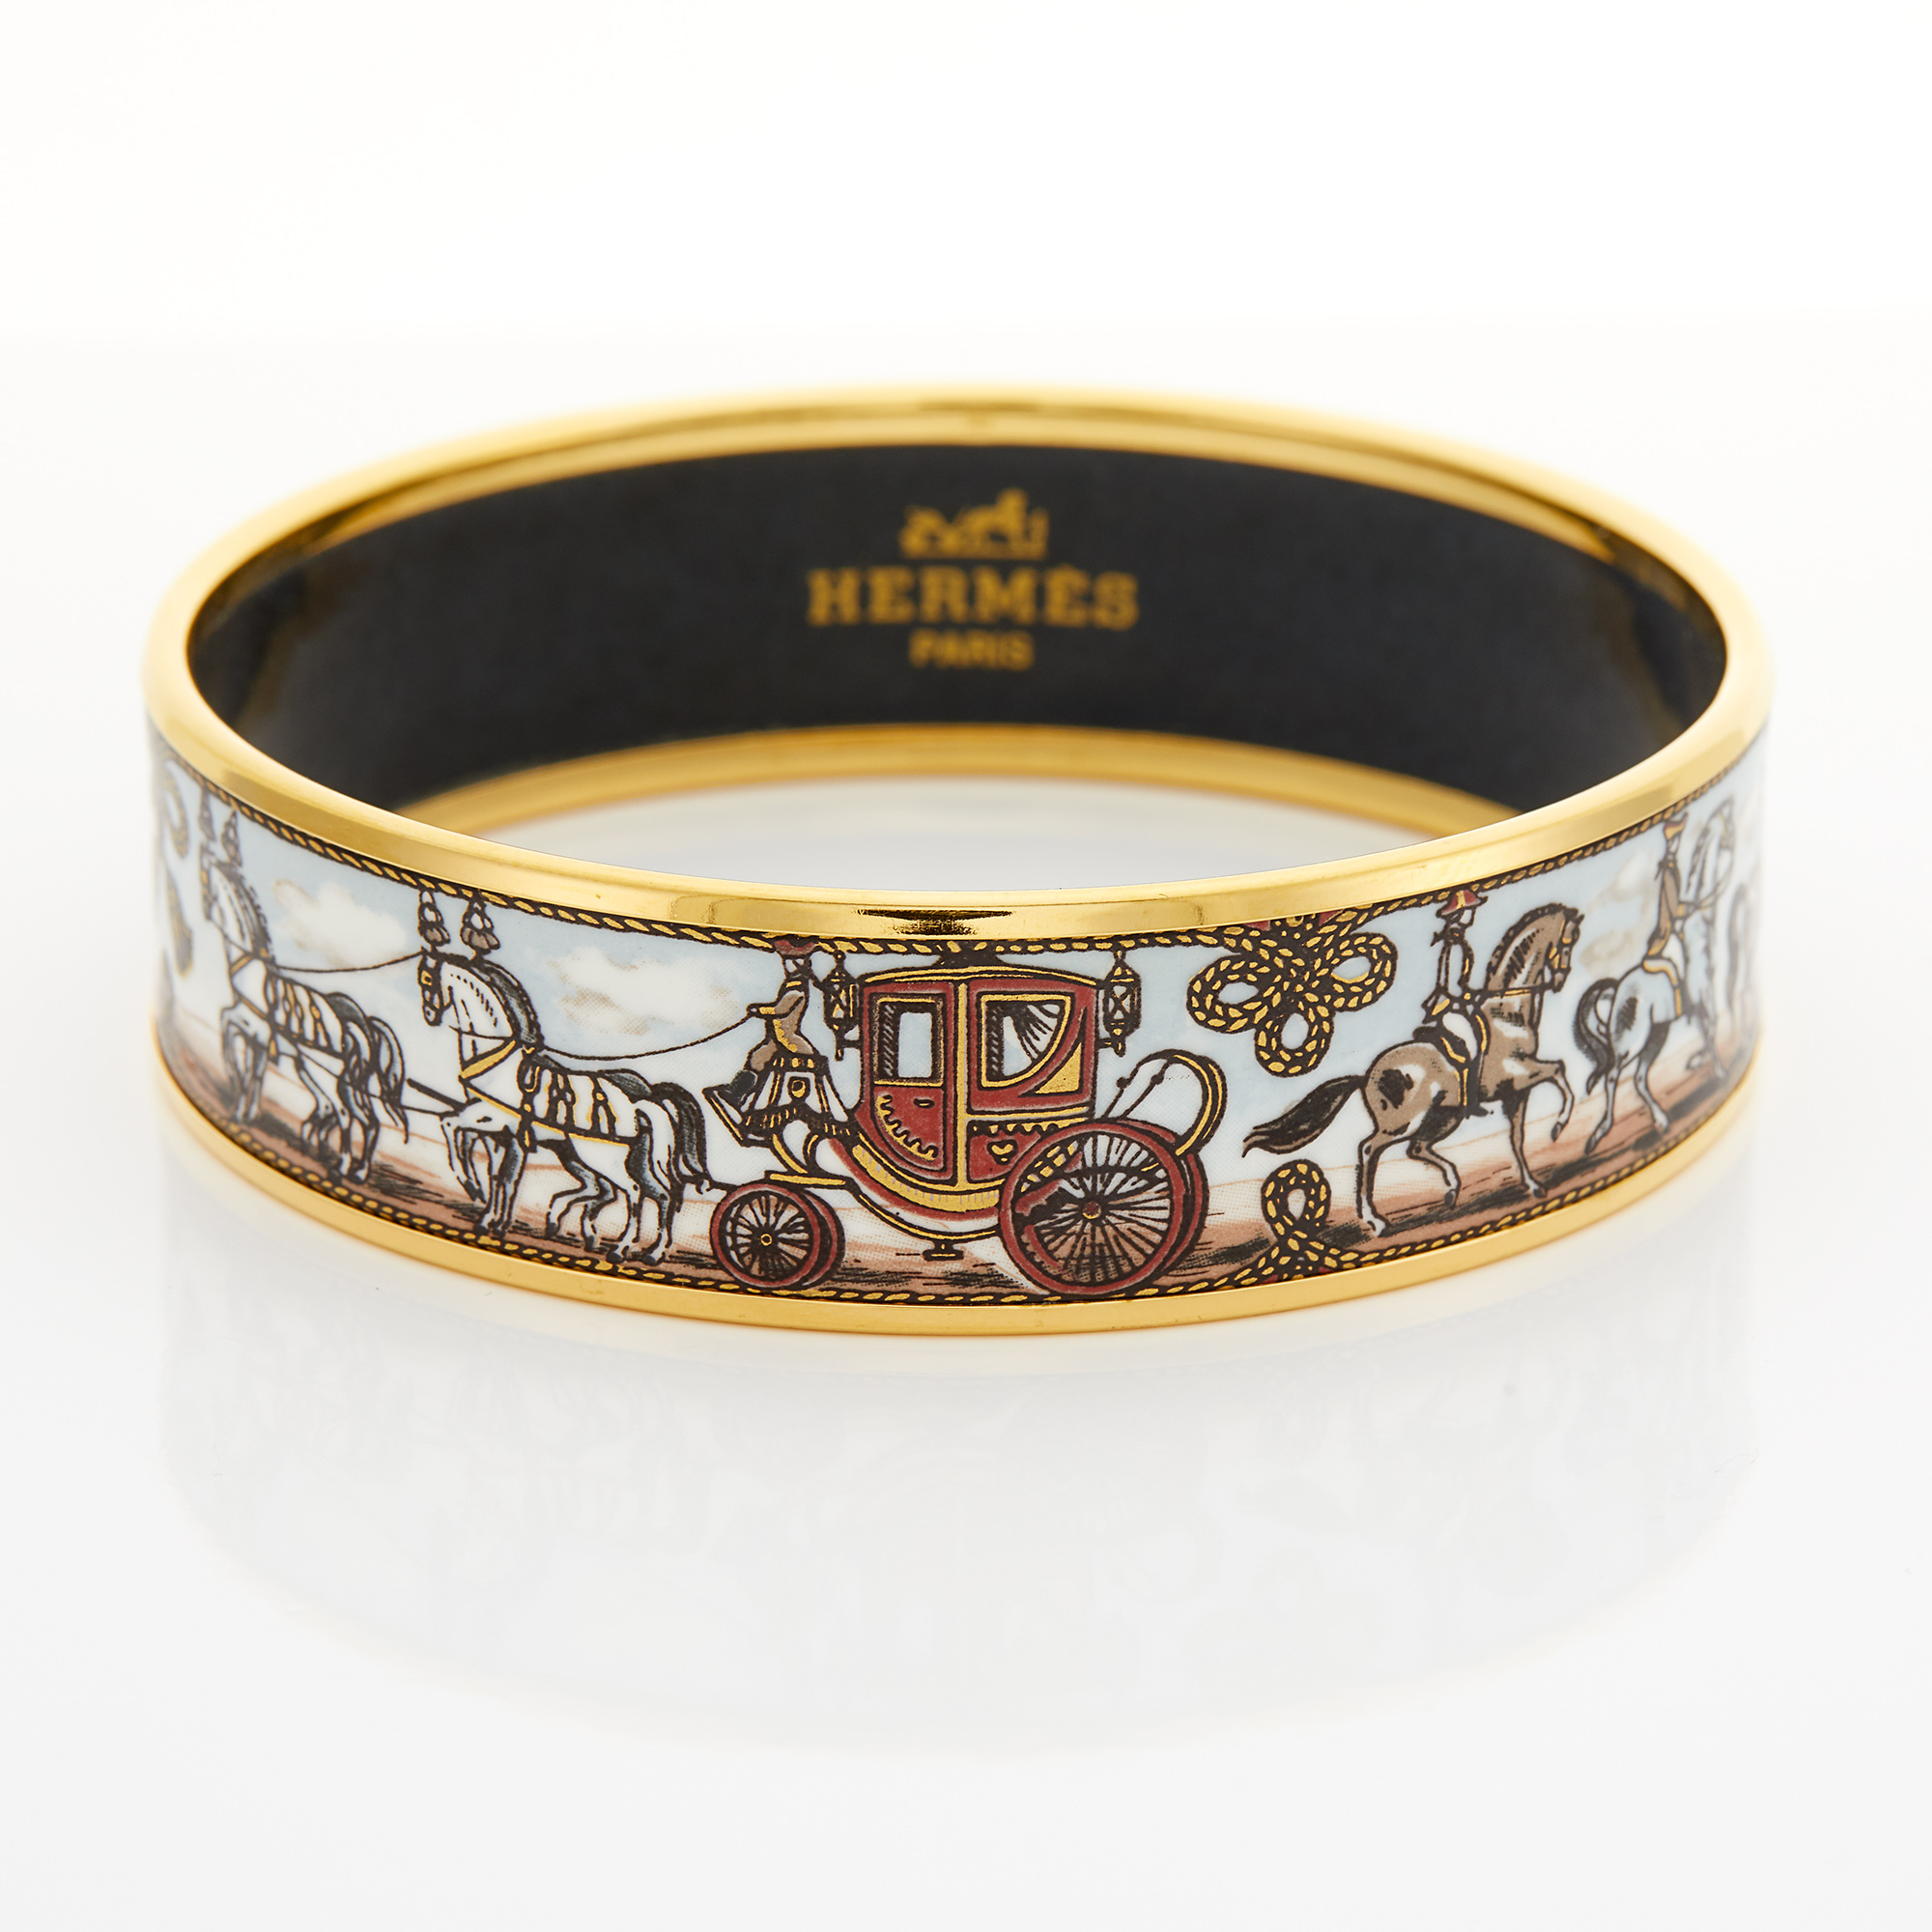 Lot image - Metal and Enamel Bangle Bracelet, Hermès